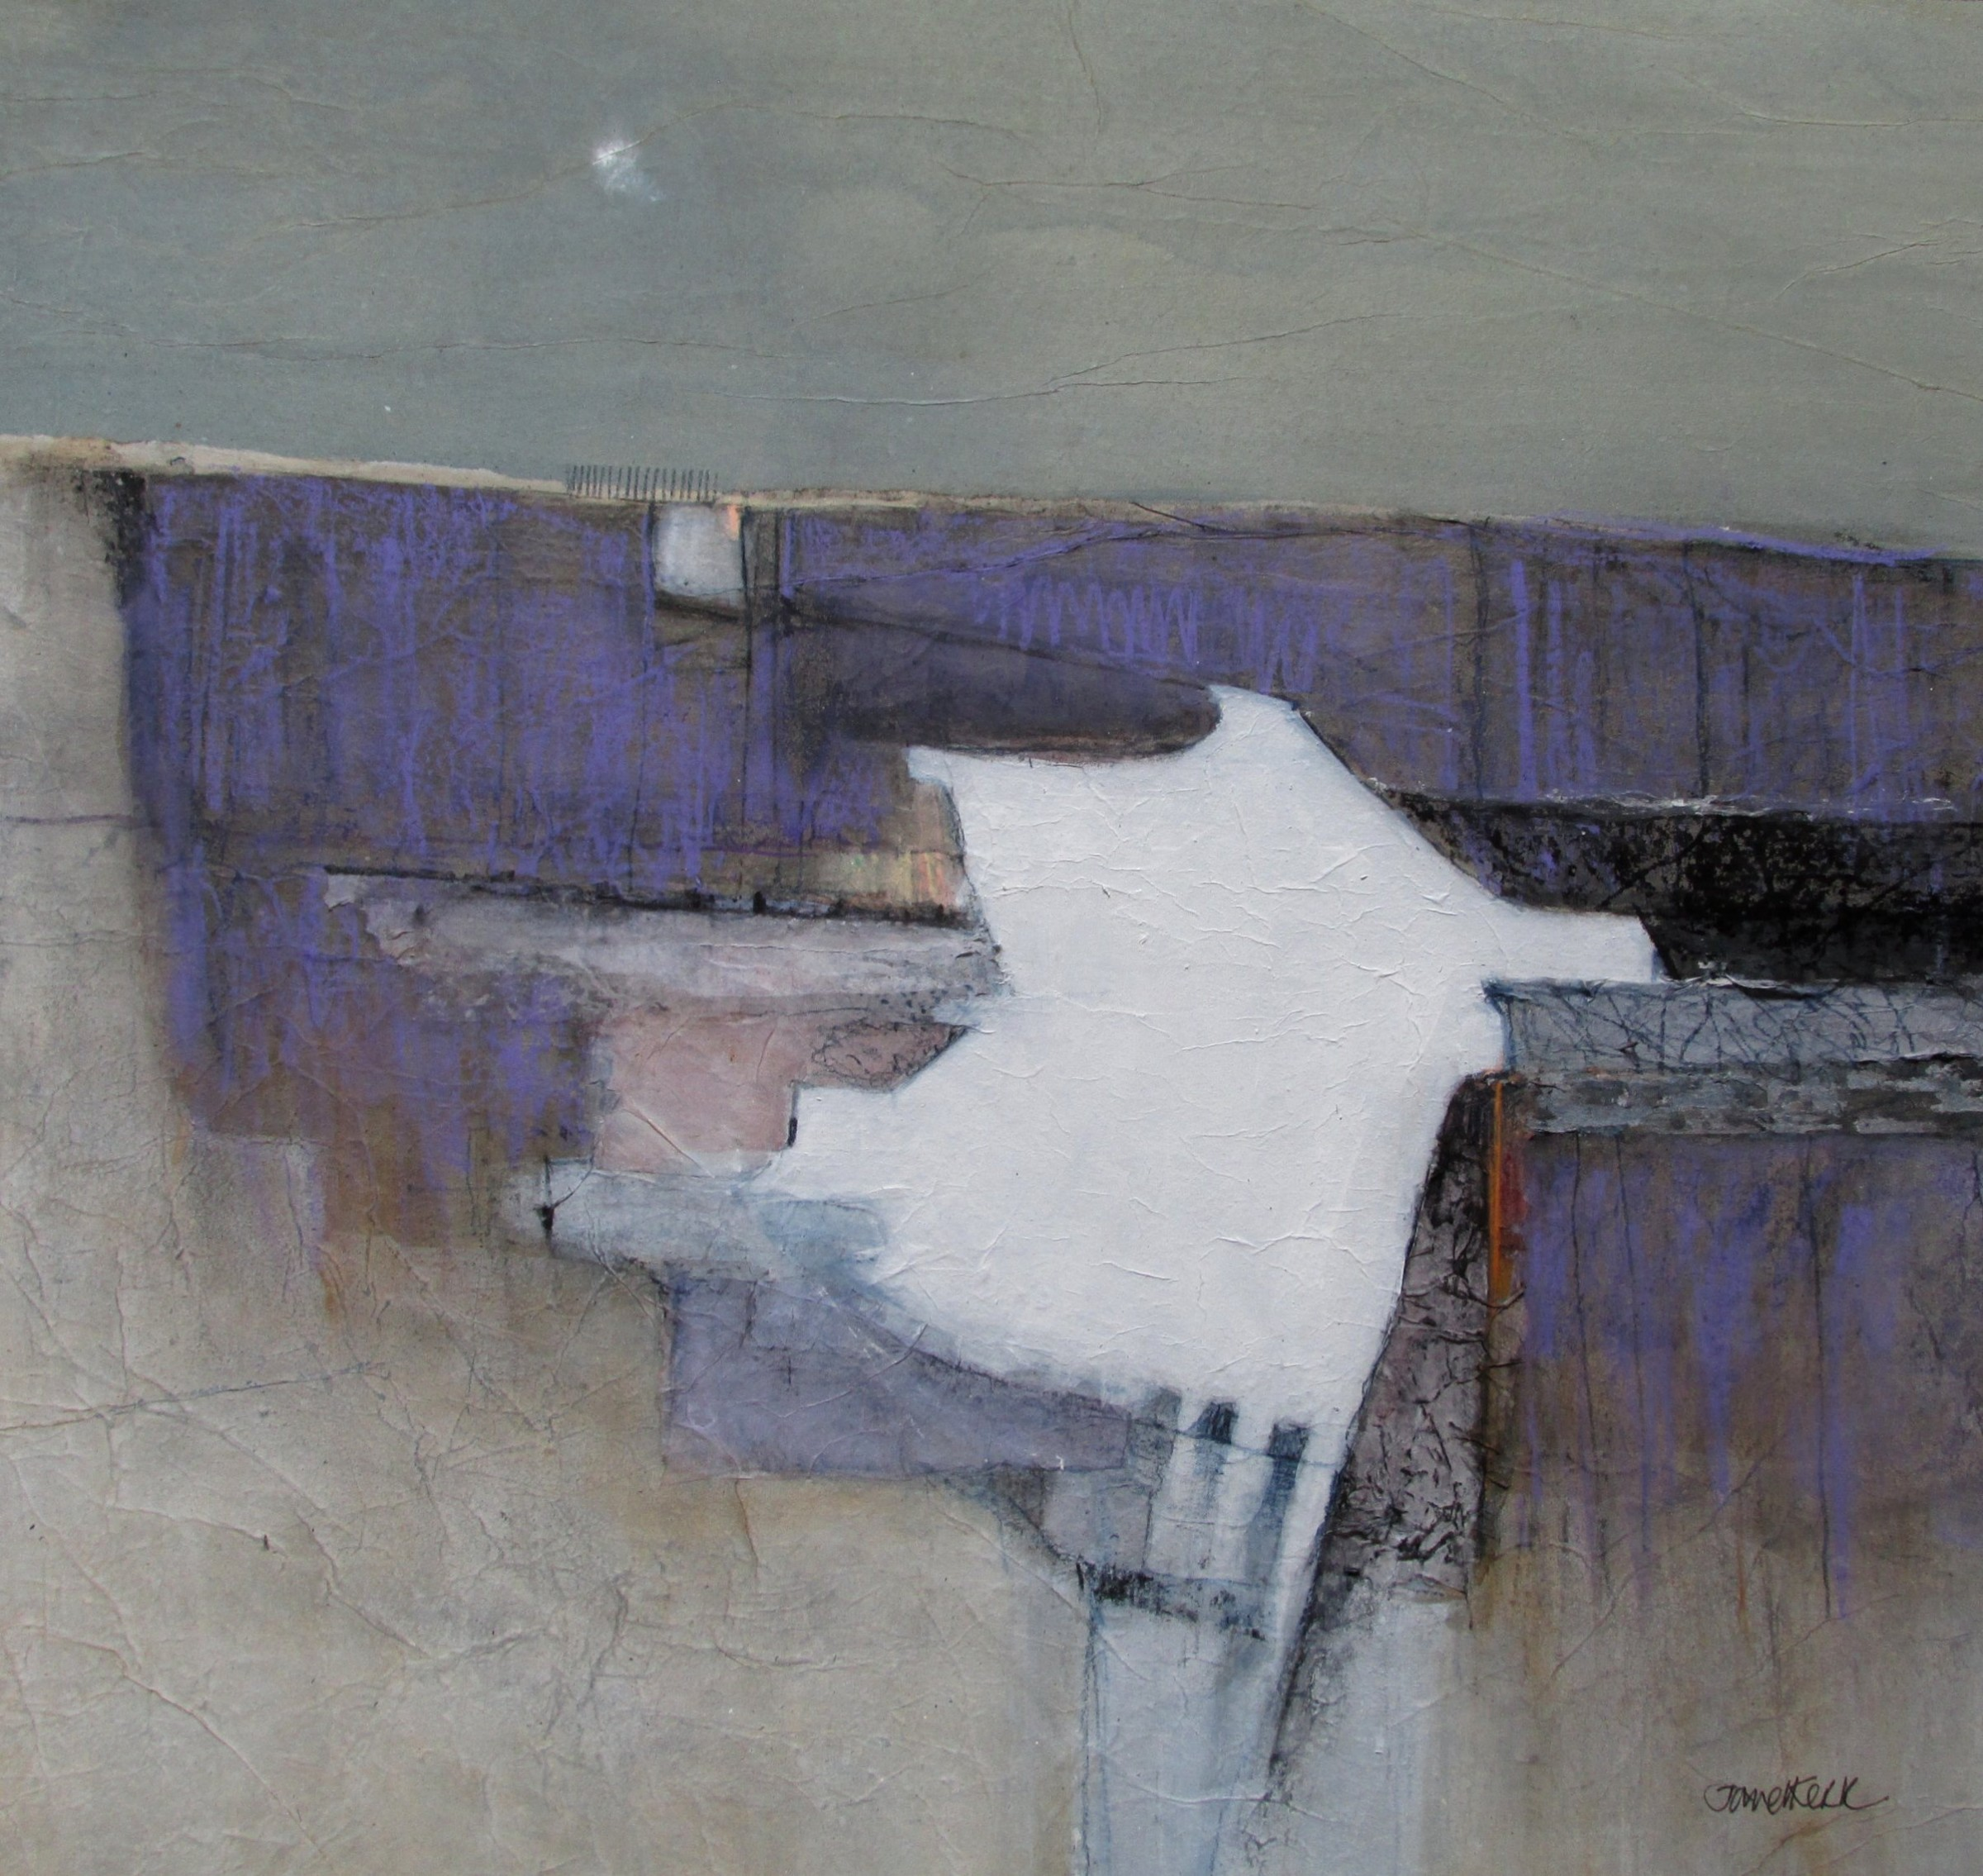 """<span class=""""link fancybox-details-link""""><a href=""""/artists/76-janet-kerr/works/9941-janet-kerr-the-railings/"""">View Detail Page</a></span><div class=""""artist""""><span class=""""artist""""><strong>Janet Kerr</strong></span></div><div class=""""title""""><em>The Railings</em></div><div class=""""medium"""">mixed media</div><div class=""""price"""">£625.00</div>"""